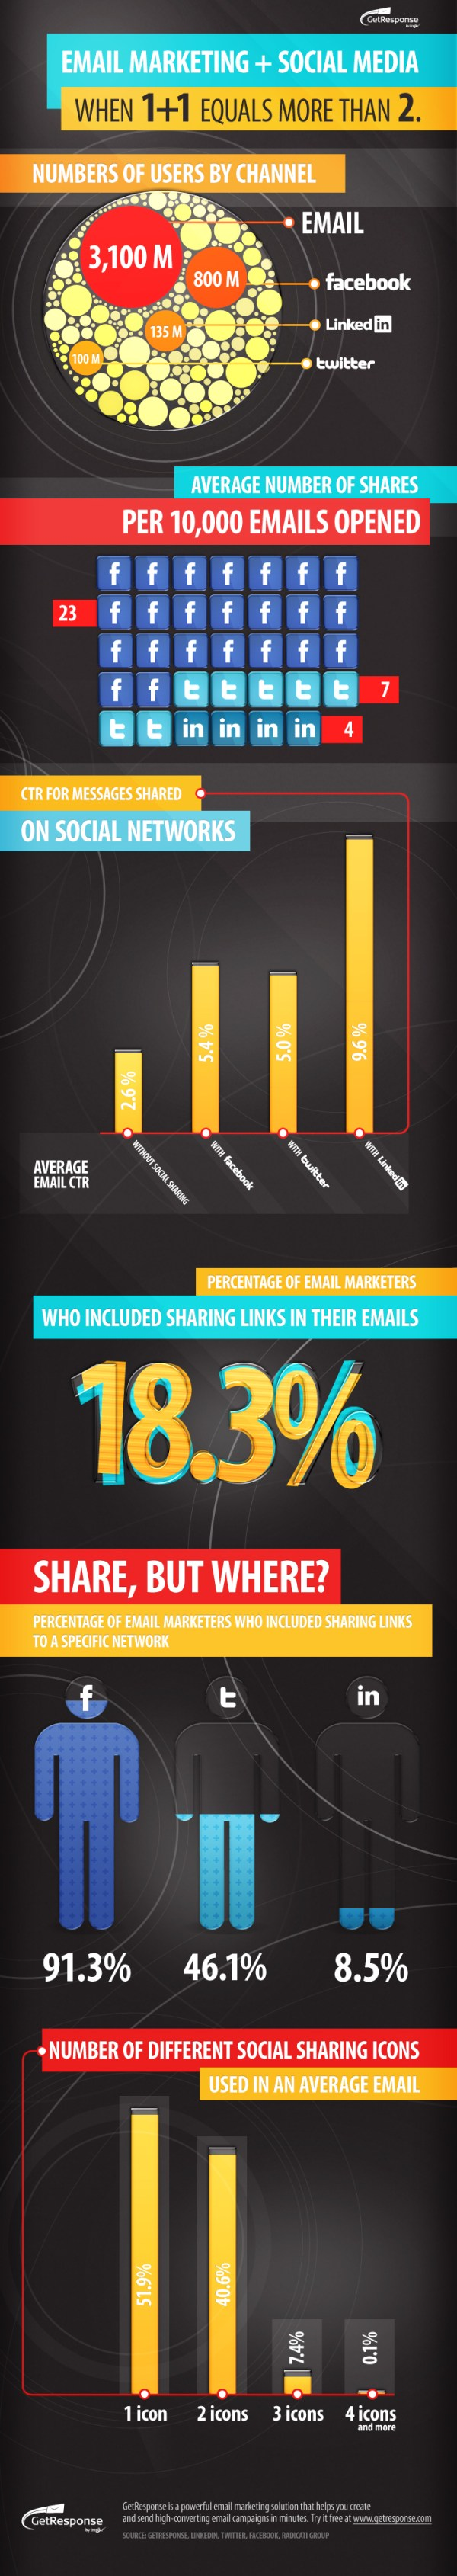 email-marketing-and-social-media-infographic